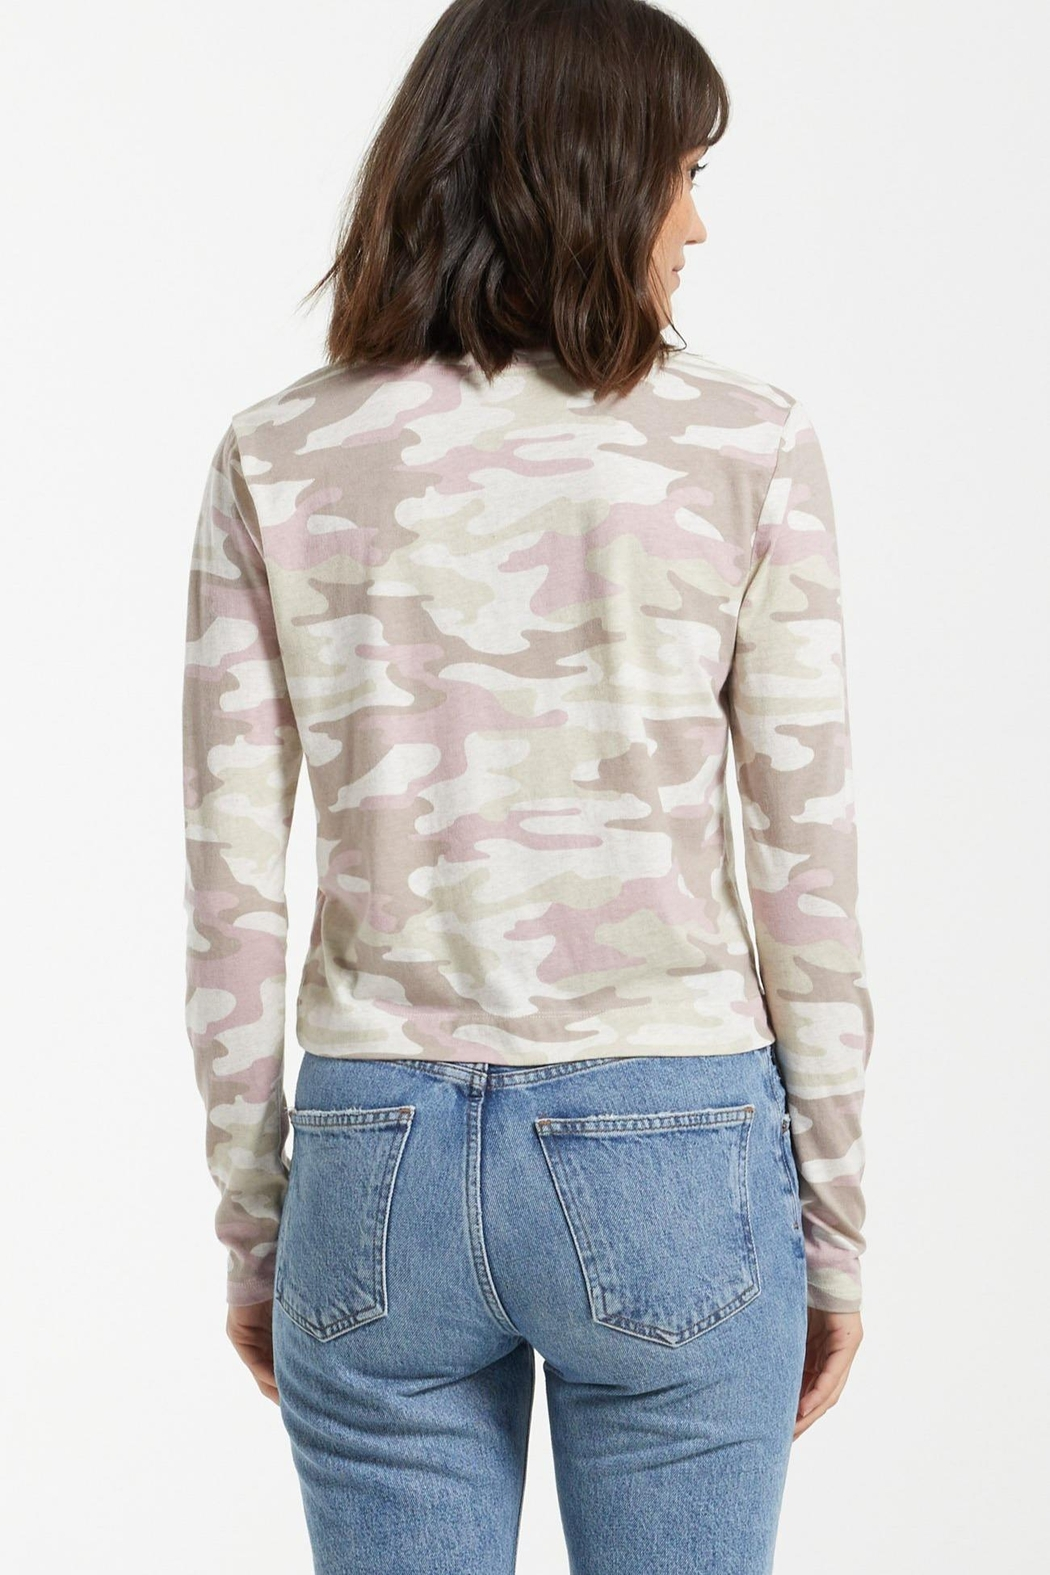 z supply Skimmer Camo Long-Sleeve - Main Image